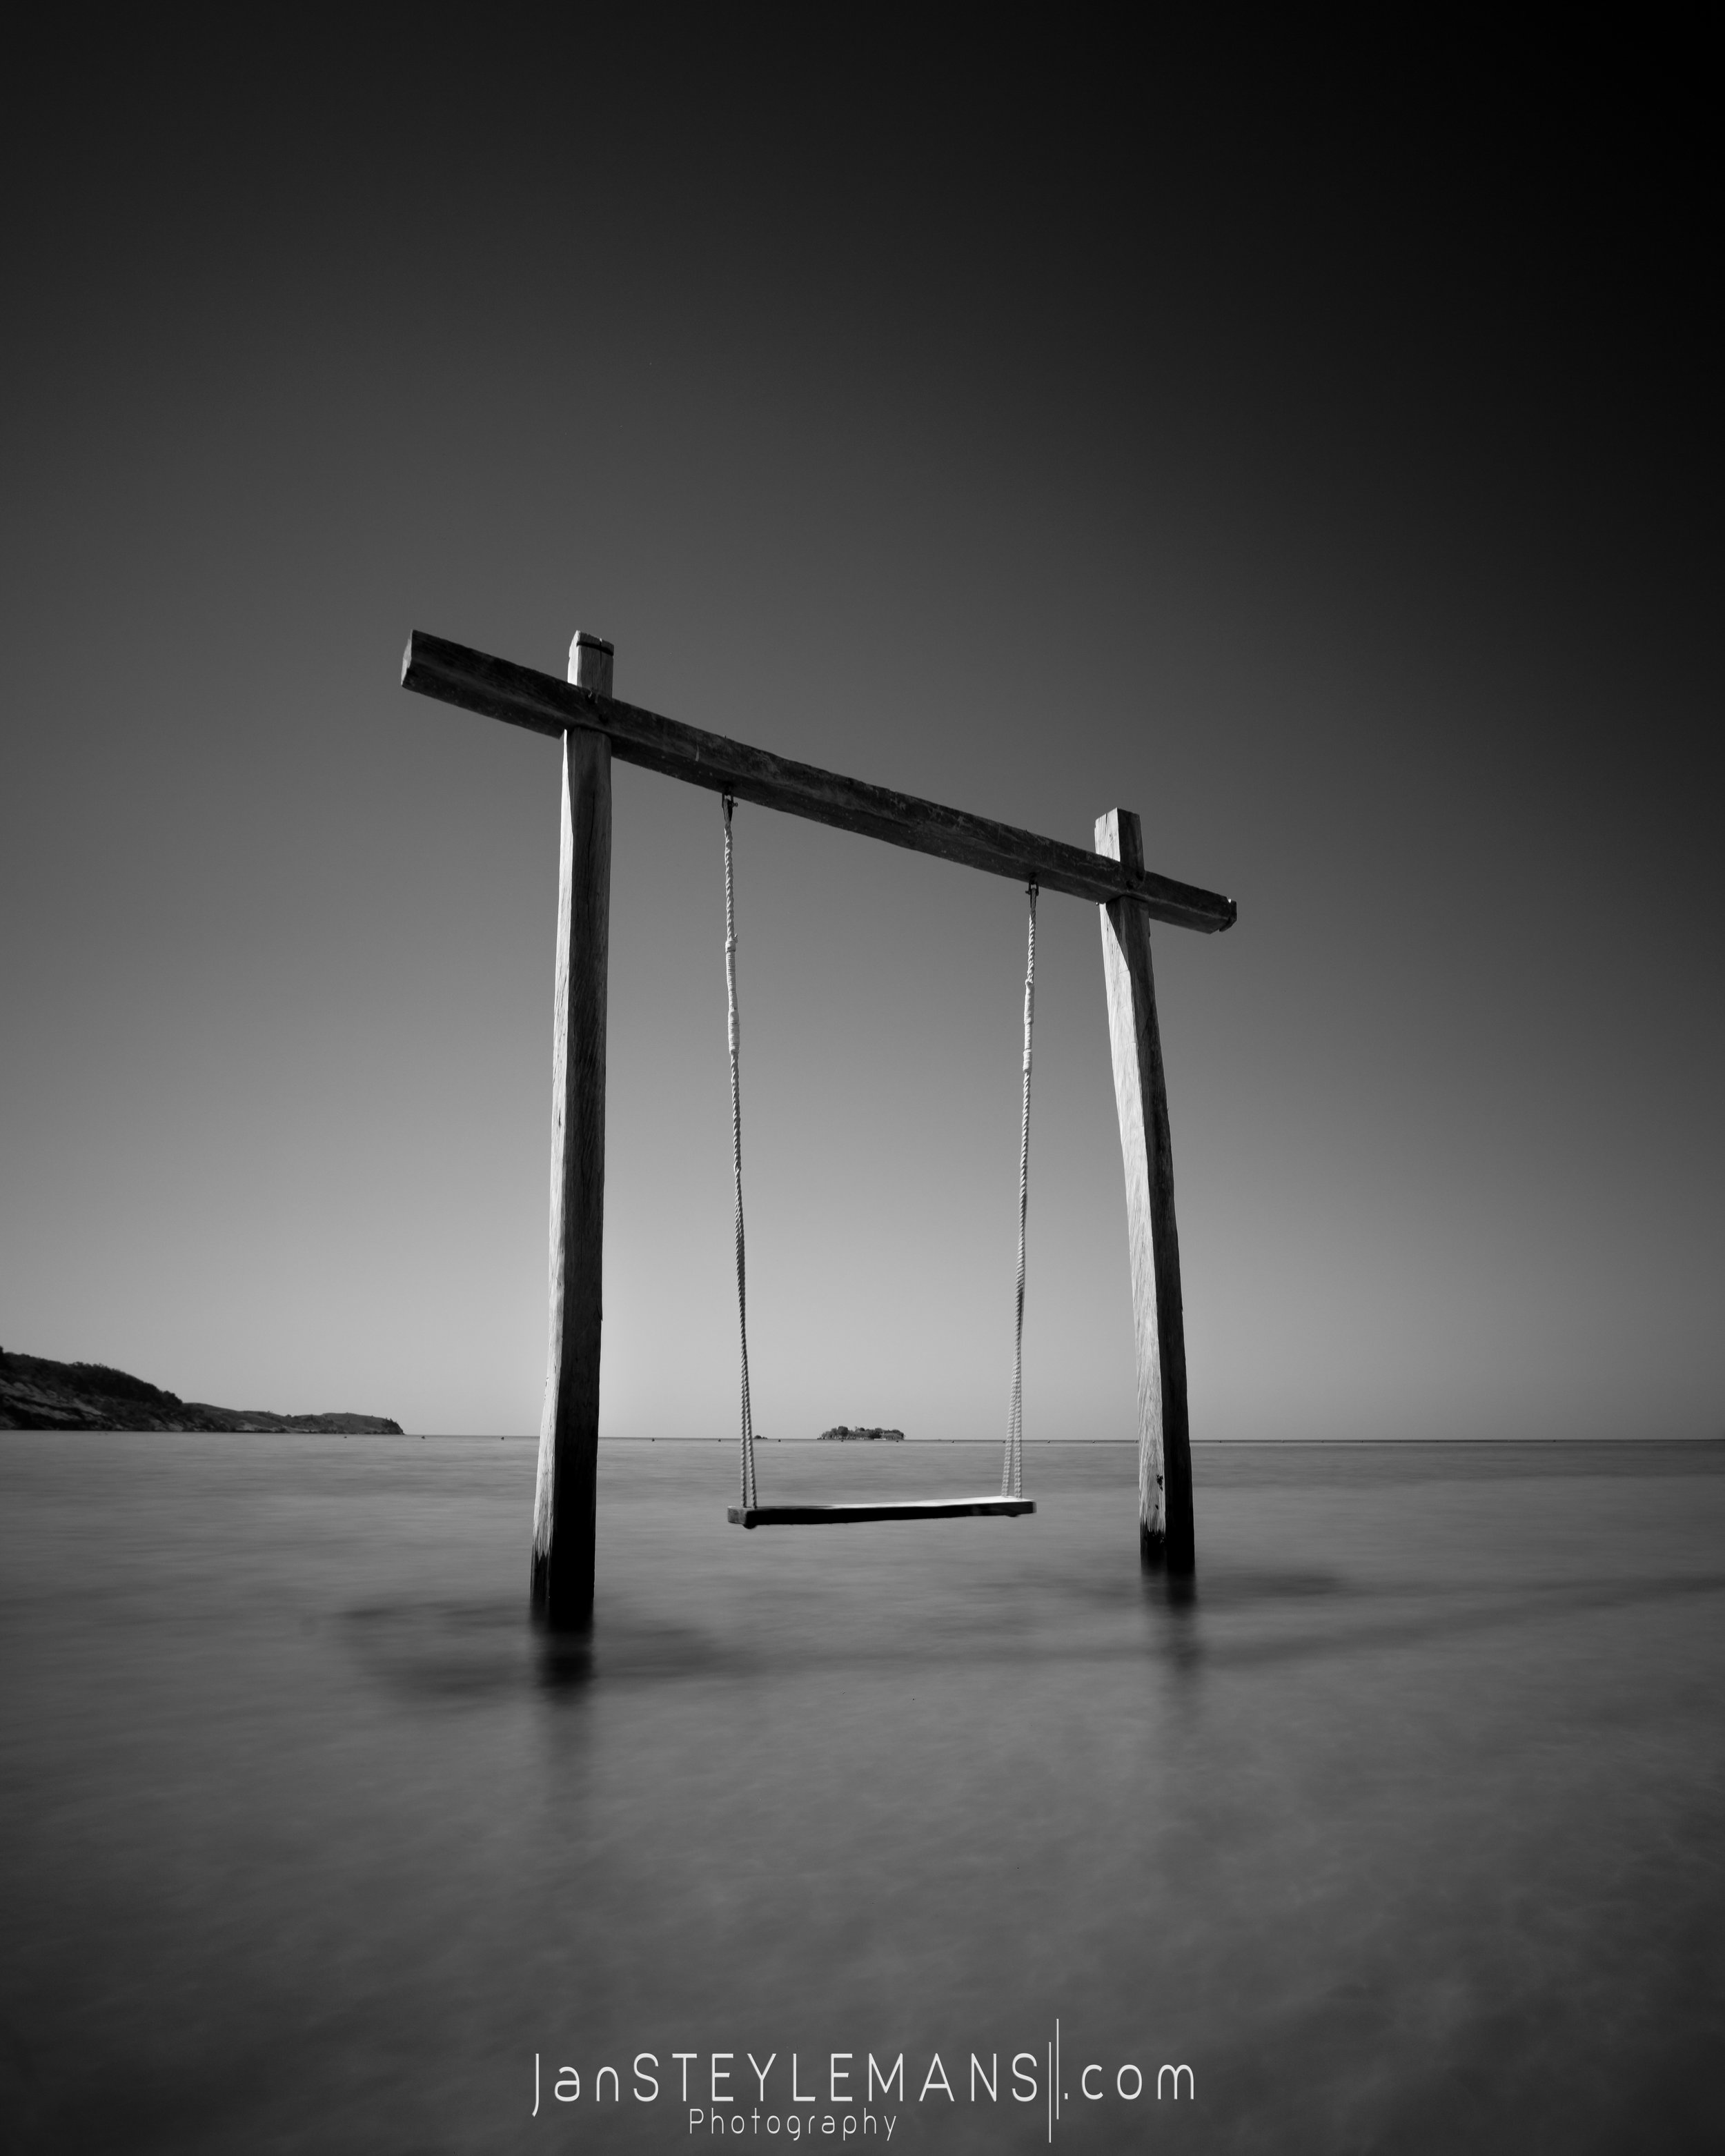 37. Black and white swing. Seraya Island, Indonesia